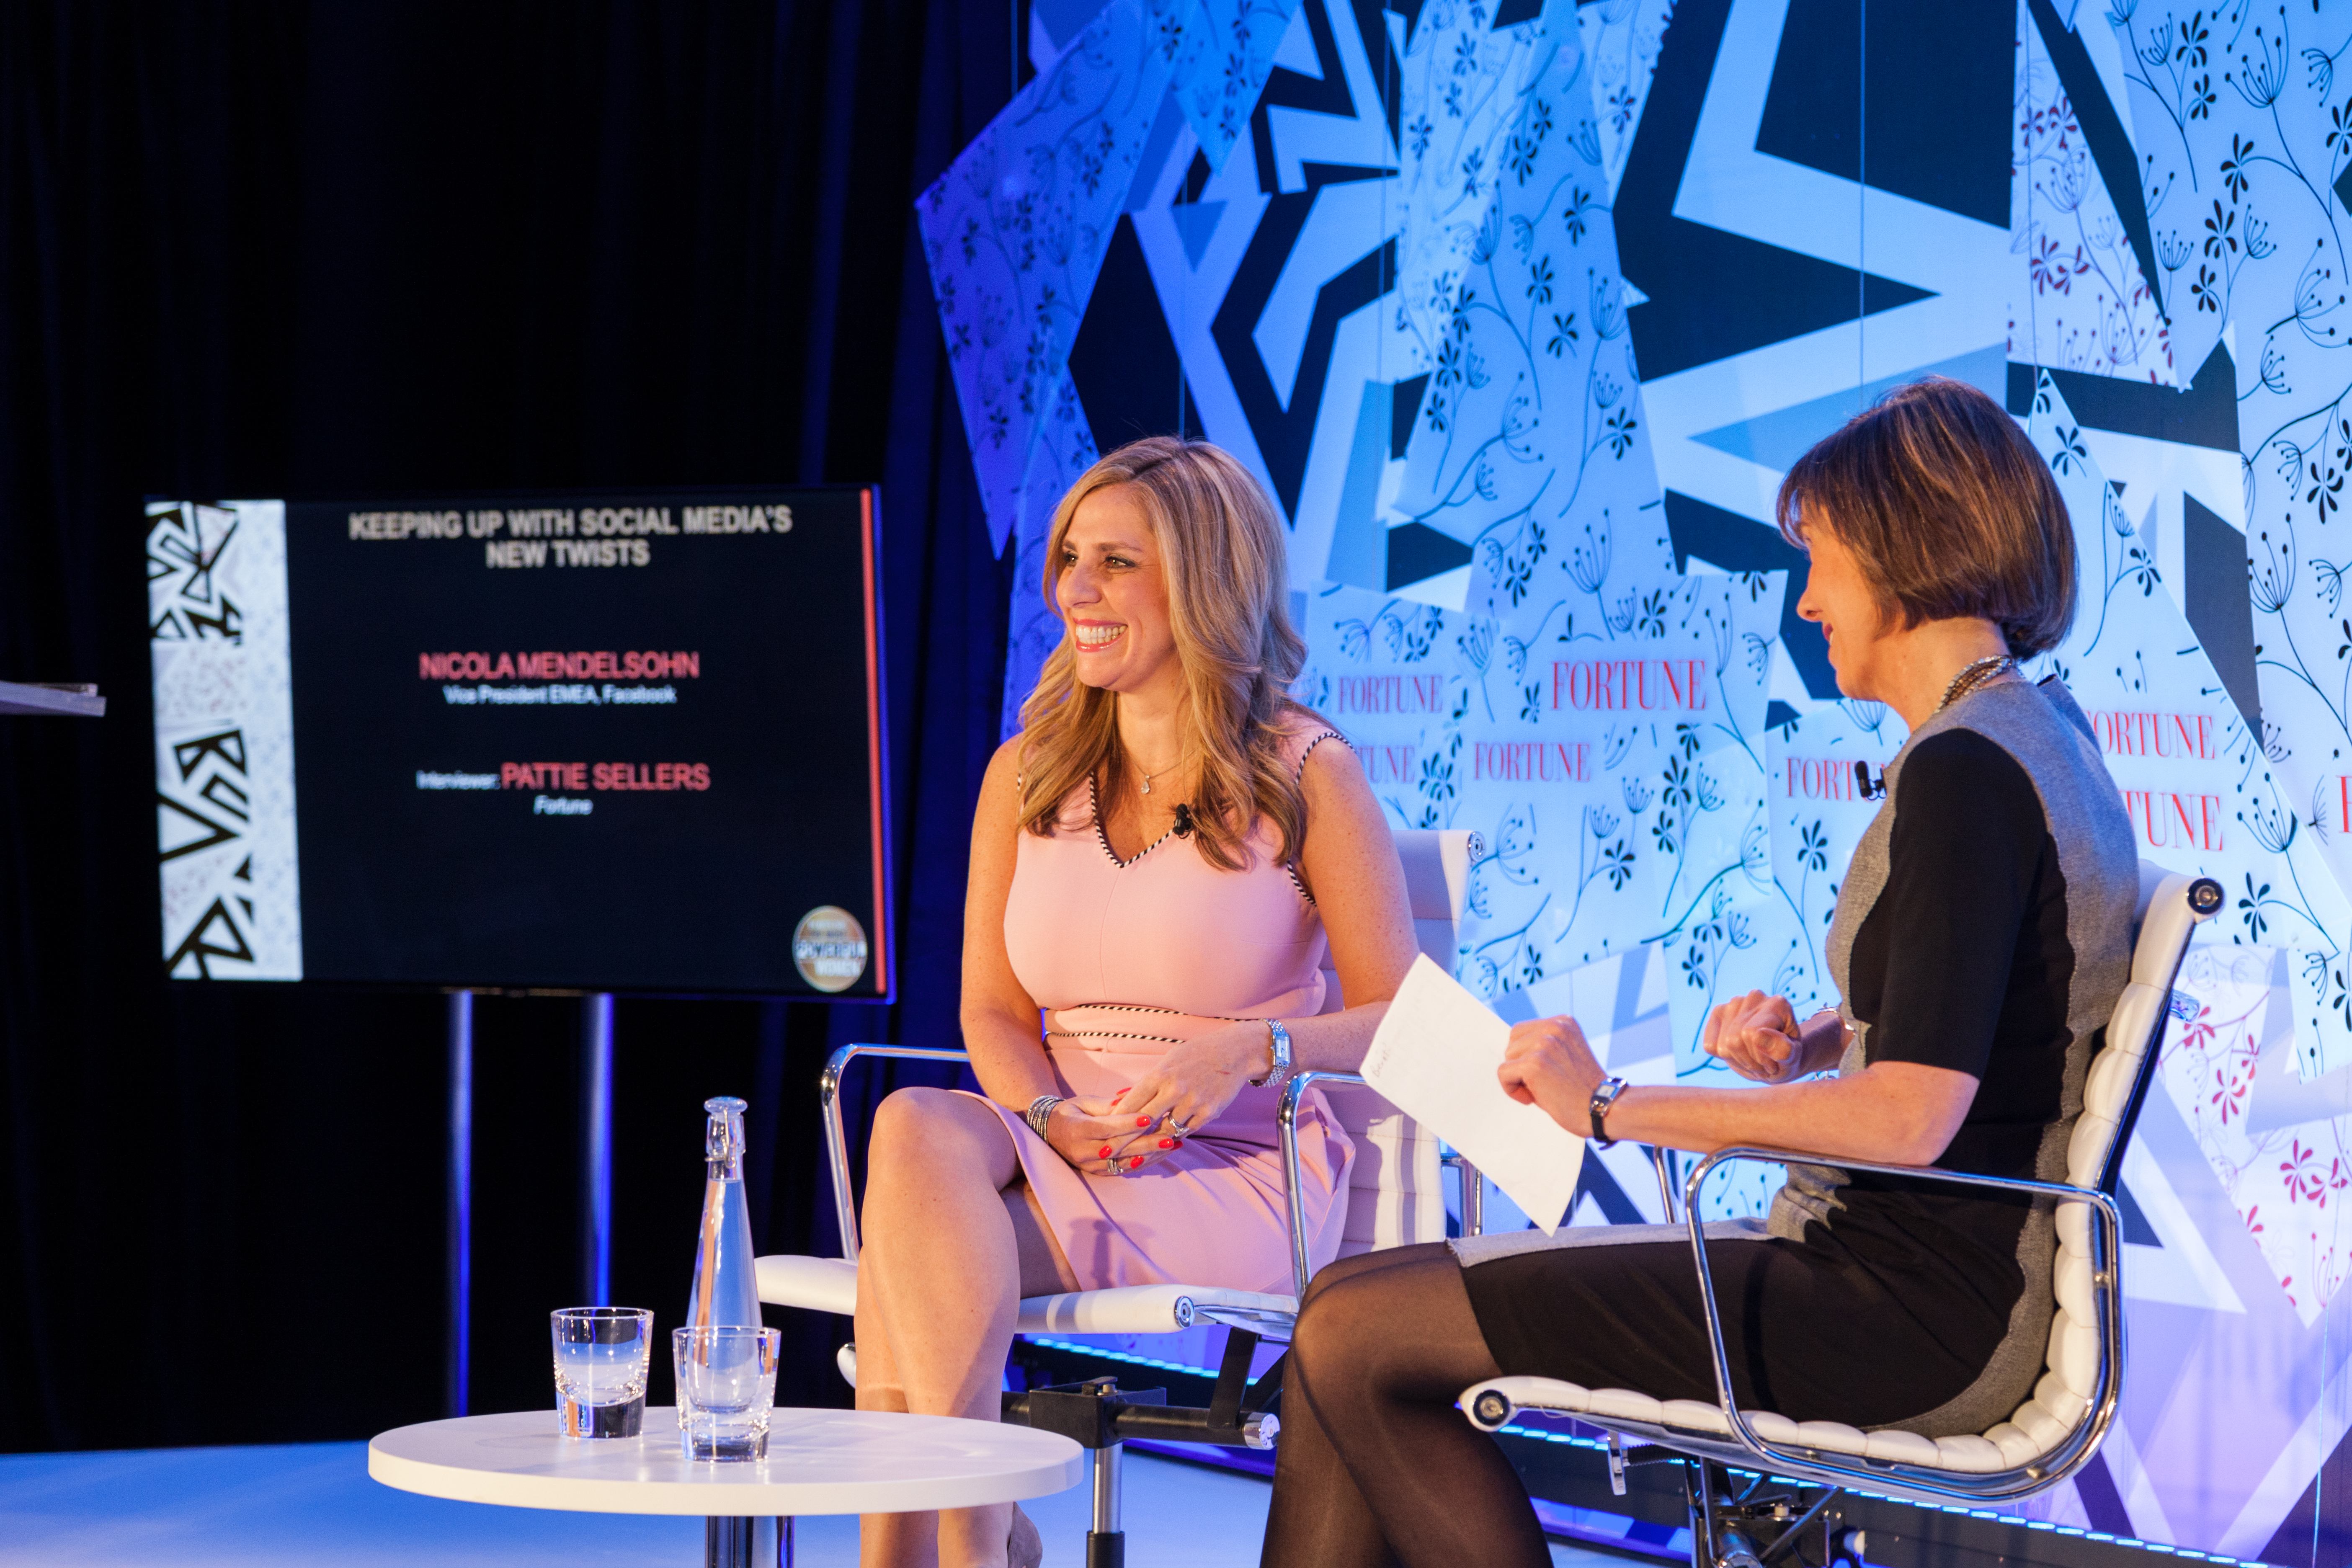 Nicola Mendelsohn, vice president EMEA for Facebook, is betting big on video.